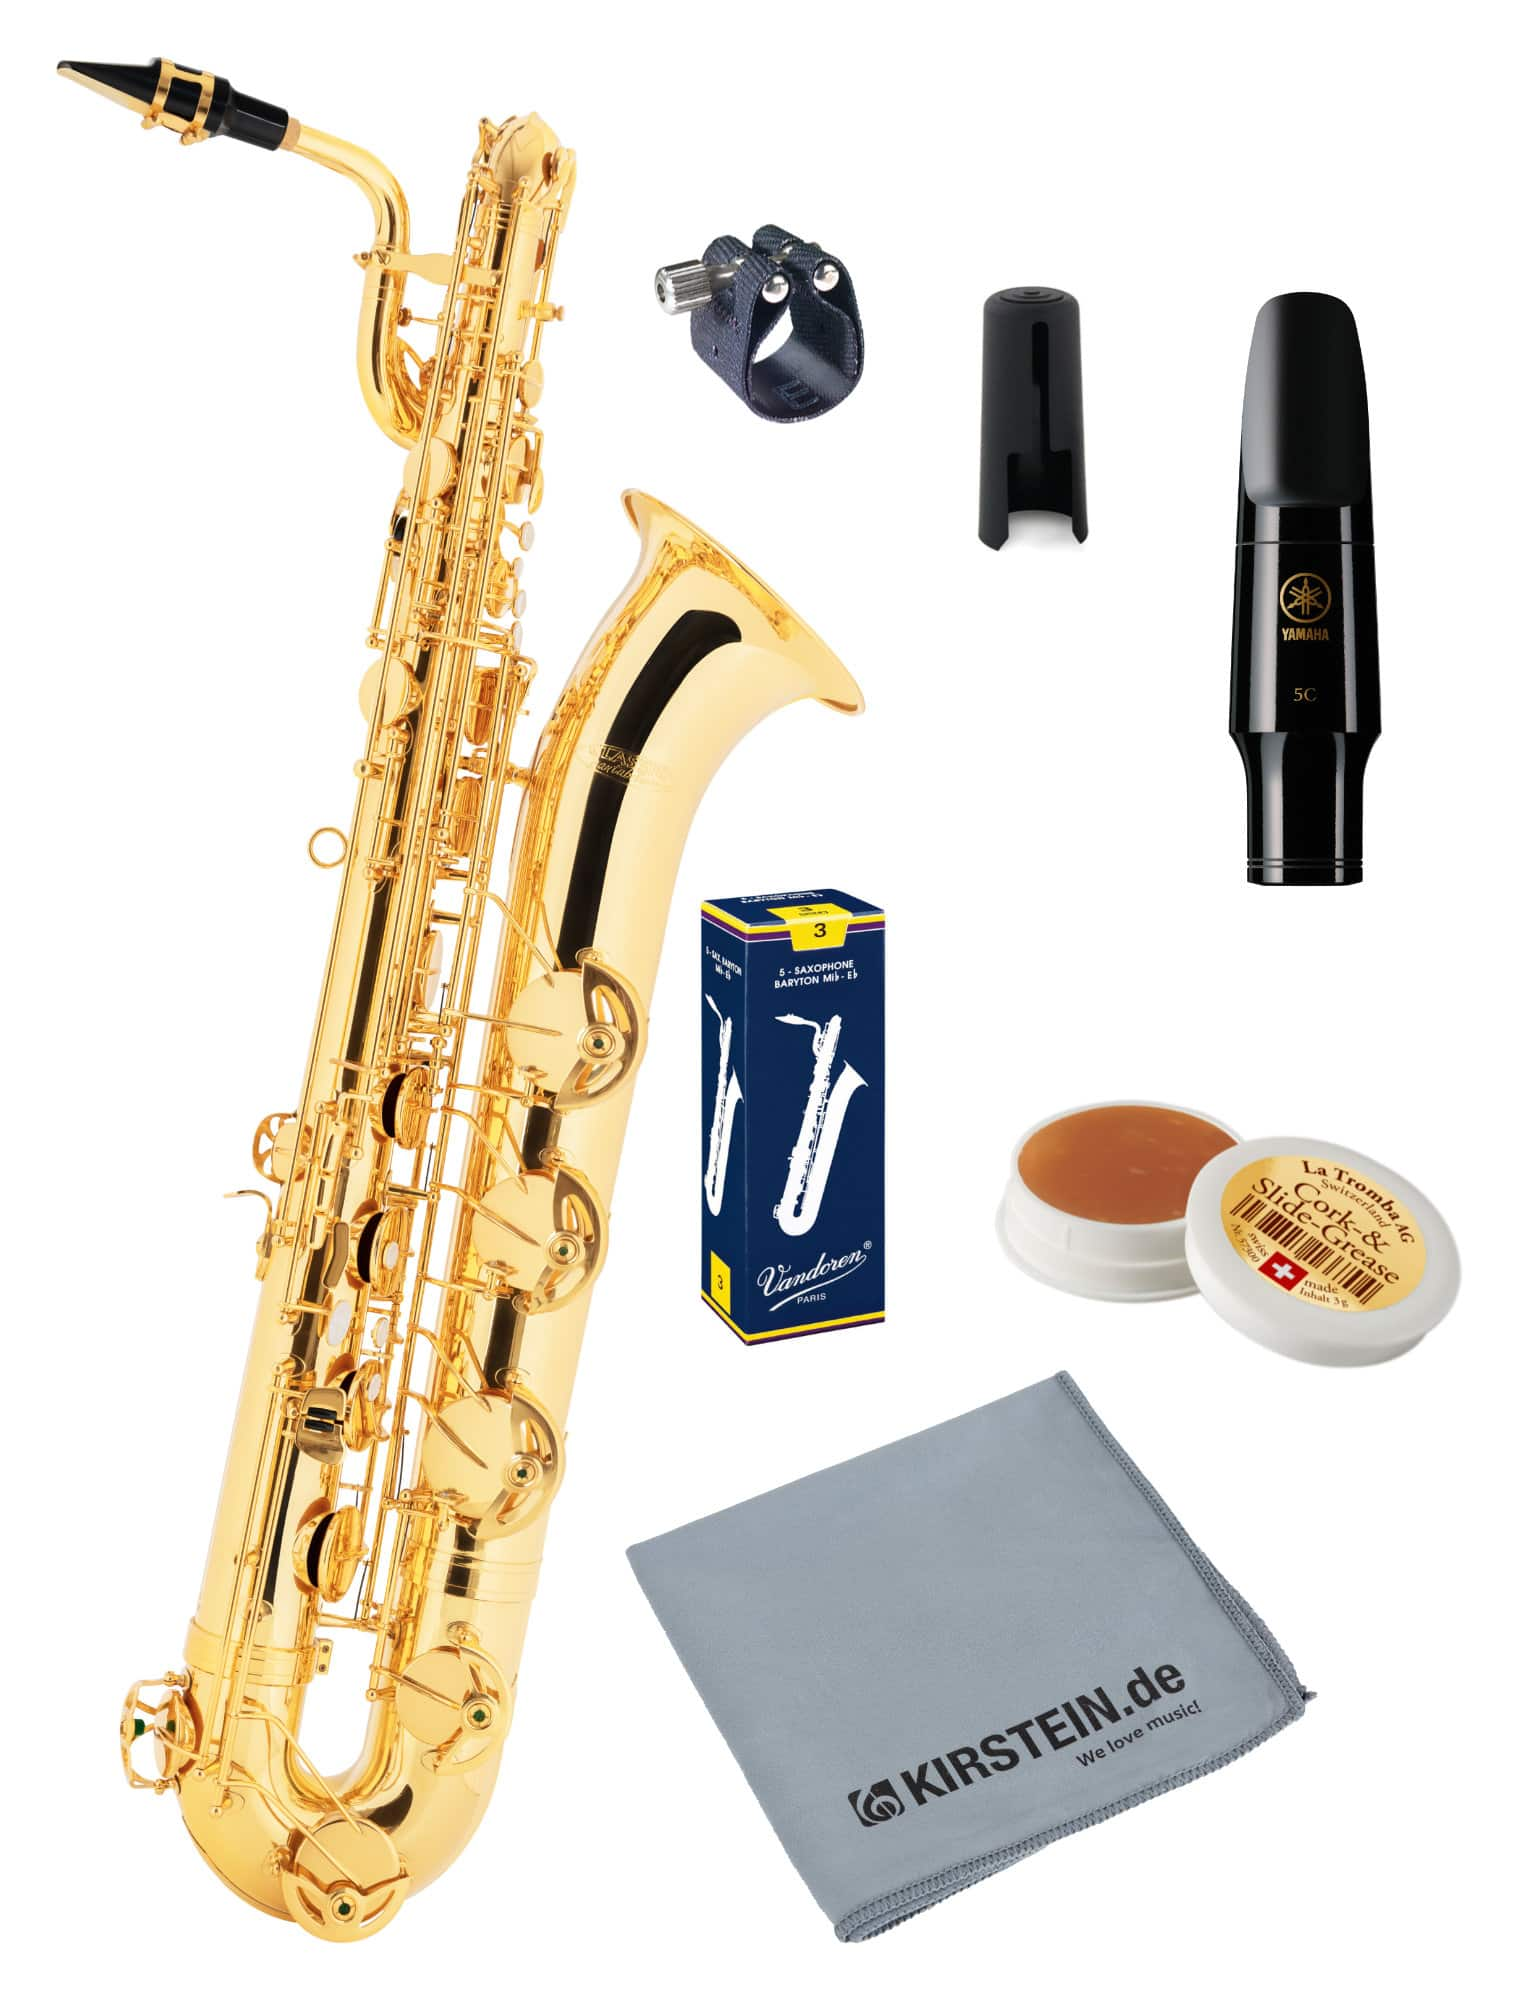 Saxophone - Classic Cantabile BS 460 Baritonsaxophon Deluxe Set - Onlineshop Musikhaus Kirstein